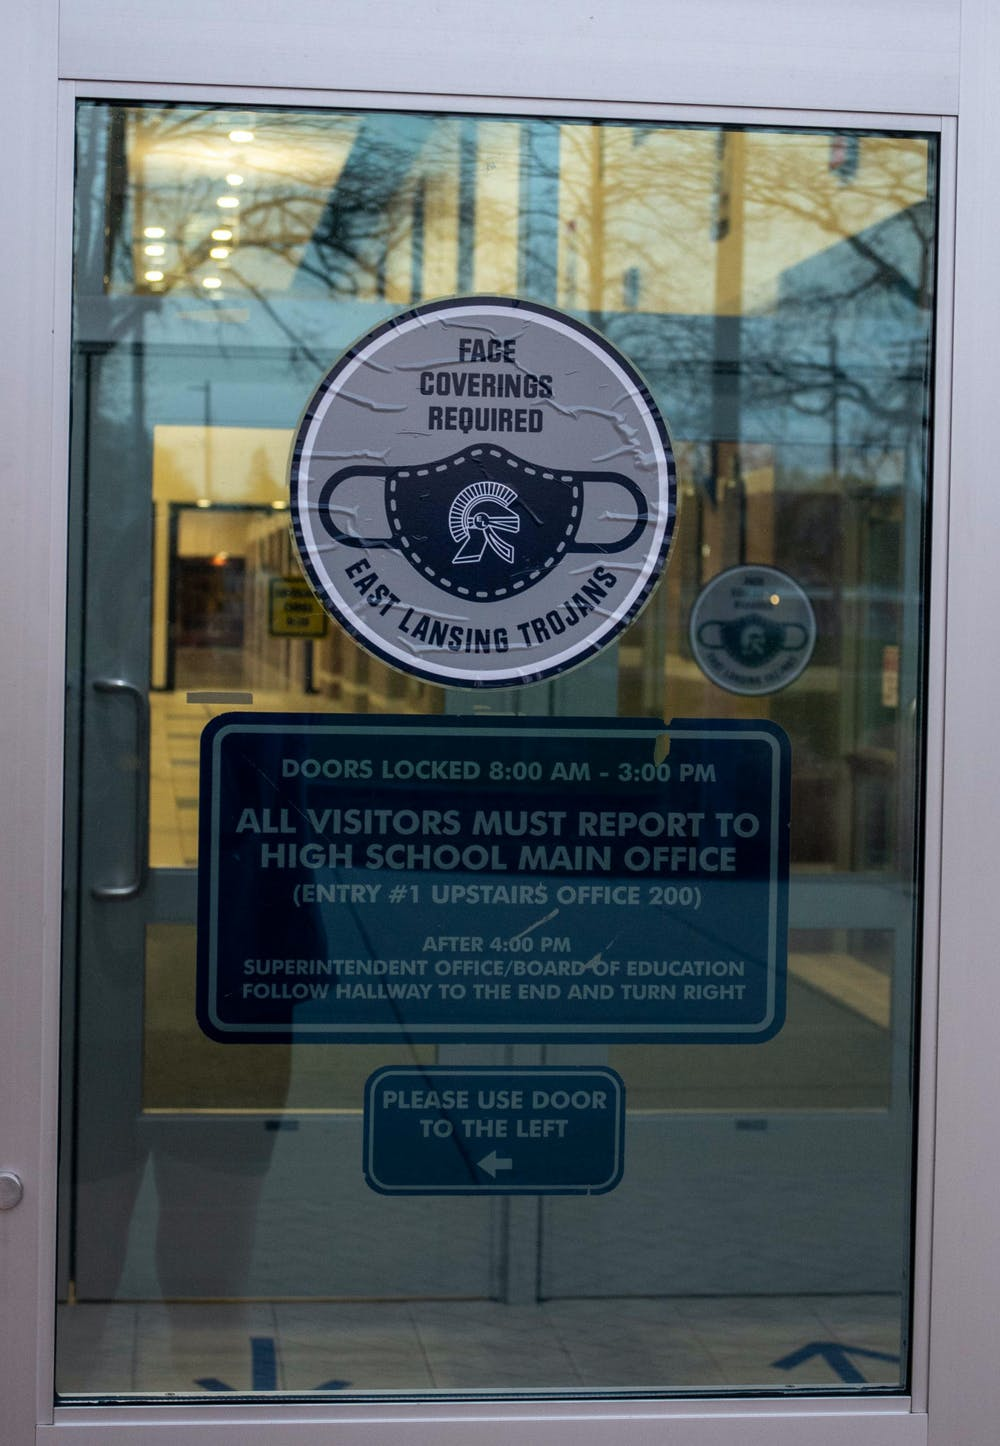 East Lansing High School will transition to remote learning starting April 12 due to the rising COVID-19 cases in the state of Michigan. Shot on April 9, 2021.